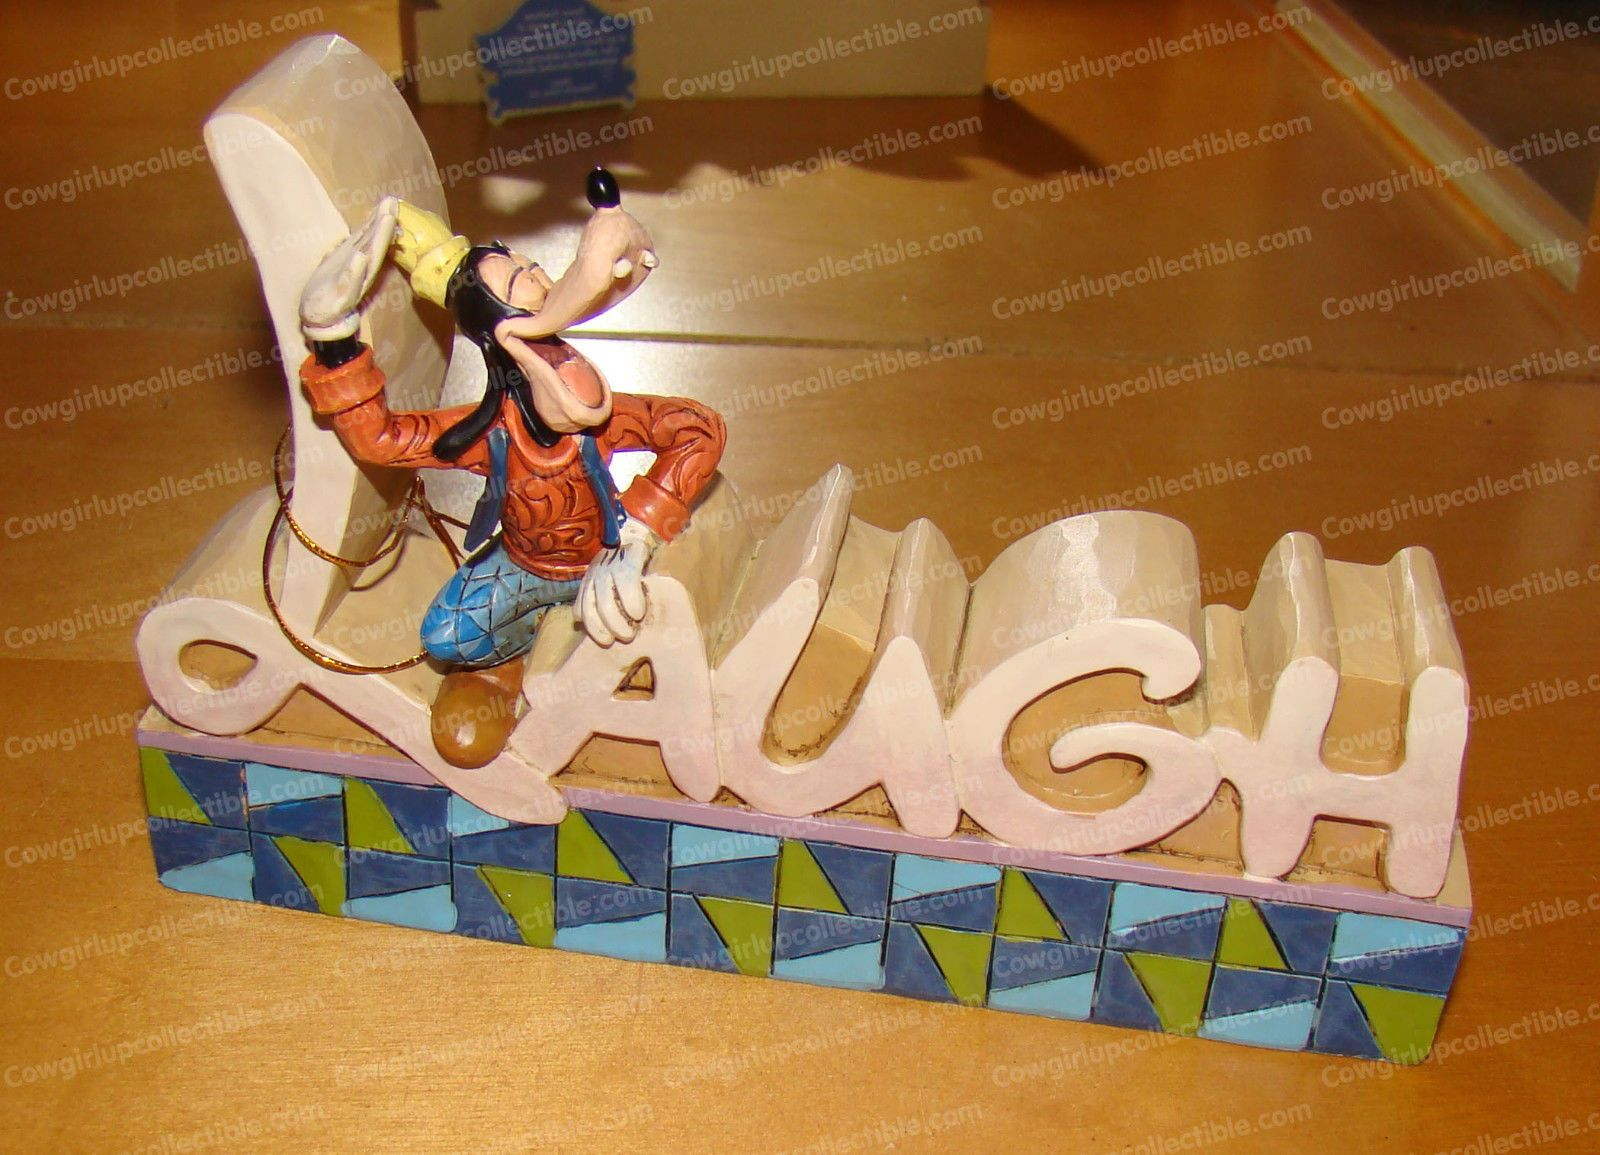 4032894 - Goofy LAUGH Plaque (Disney Traditions by Jim Shore)